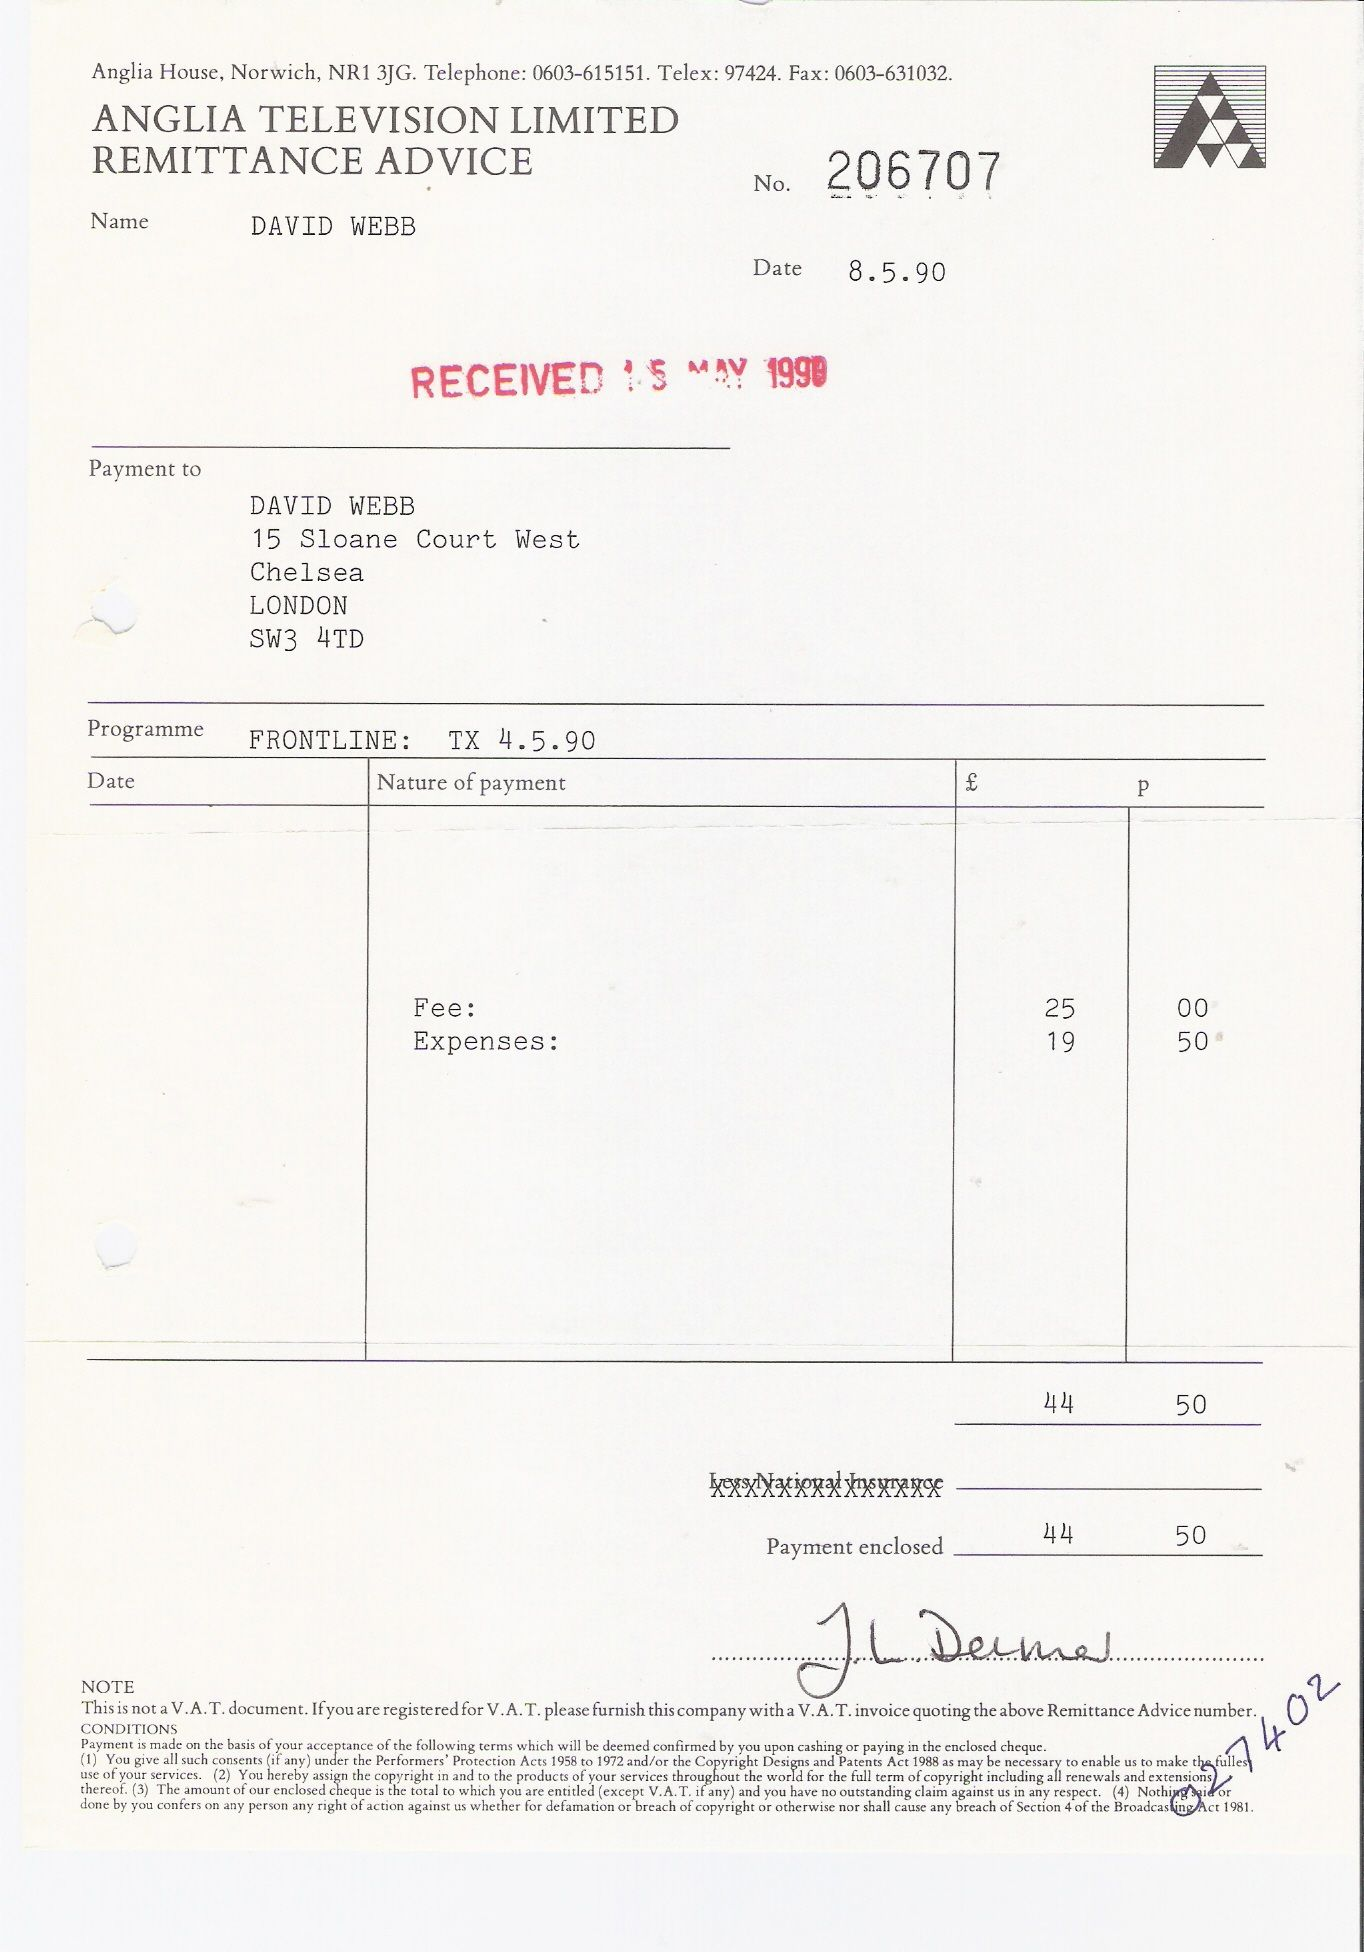 Invoice Order Form Copy Of Blank Invoice Company Receipt Template Pdf with I Acknowledge Receipt Of Your Email  Contractor Printable Invoice Template The Ncropa Archive   Helpingtohealus Terrific Free  Rent Receipt Generator Pdf